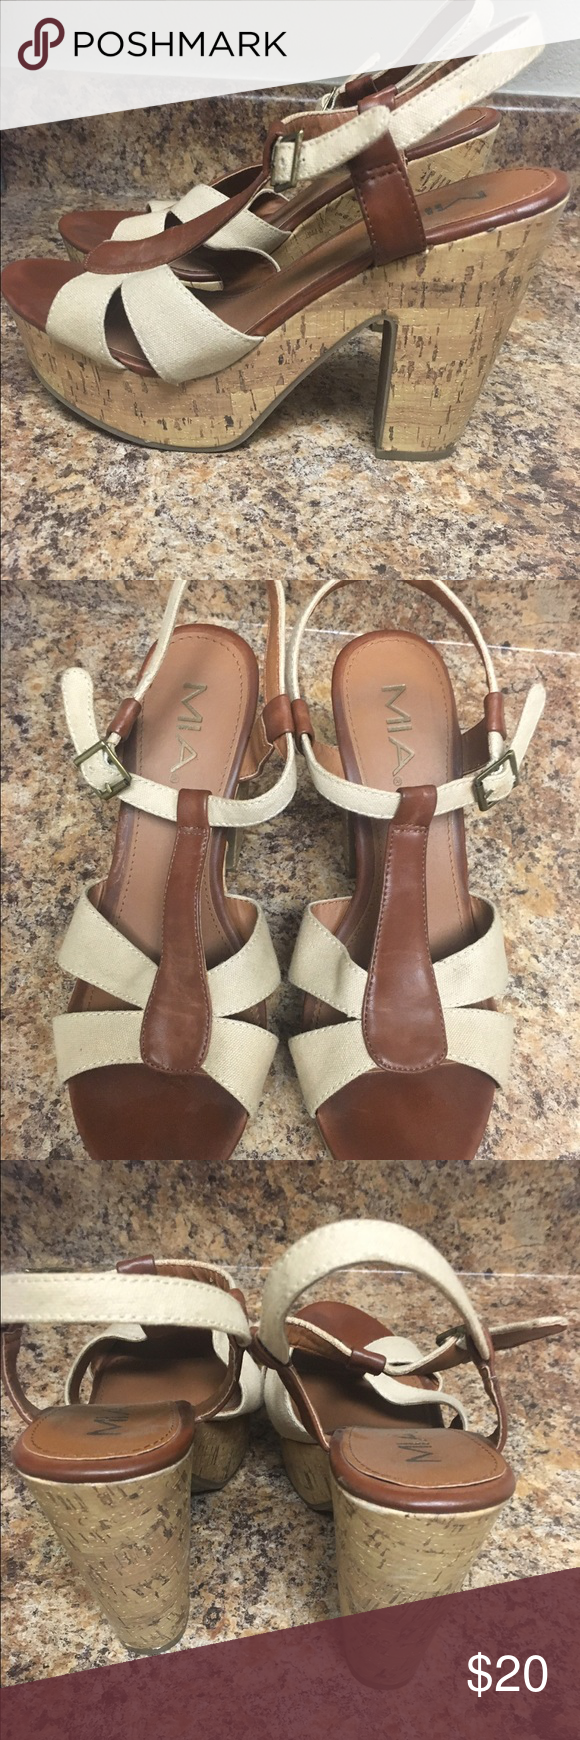 """Mia Heels Mia Brown & Tan Cork Heel Sandals. Pre- loved but still in great condition! Heel height approx 5"""" Mia Shoes Platforms"""